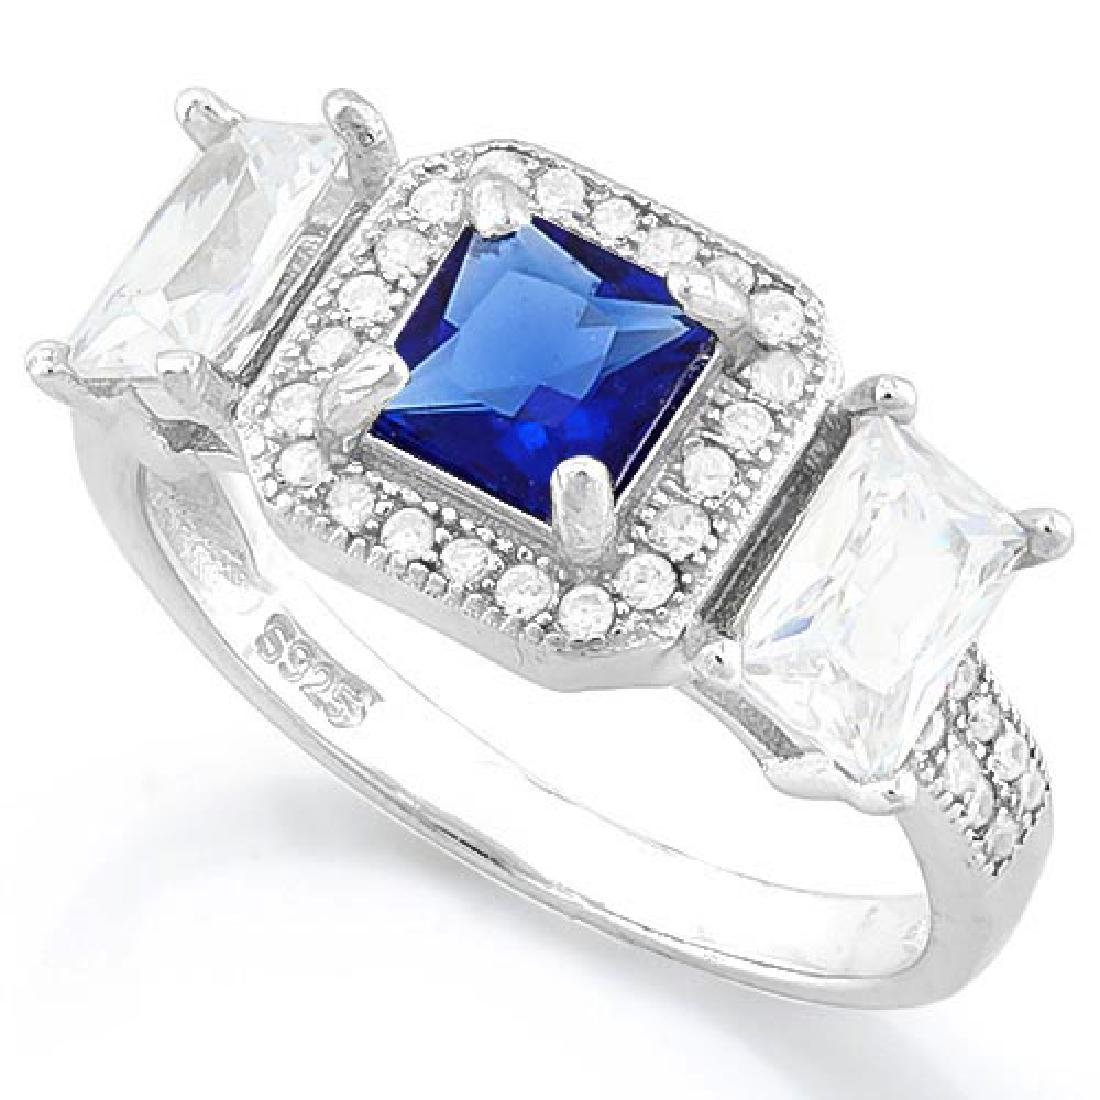 IDEAL CREATED BLUE SAPPHIRE 925 STERLING SILVER HALO RI